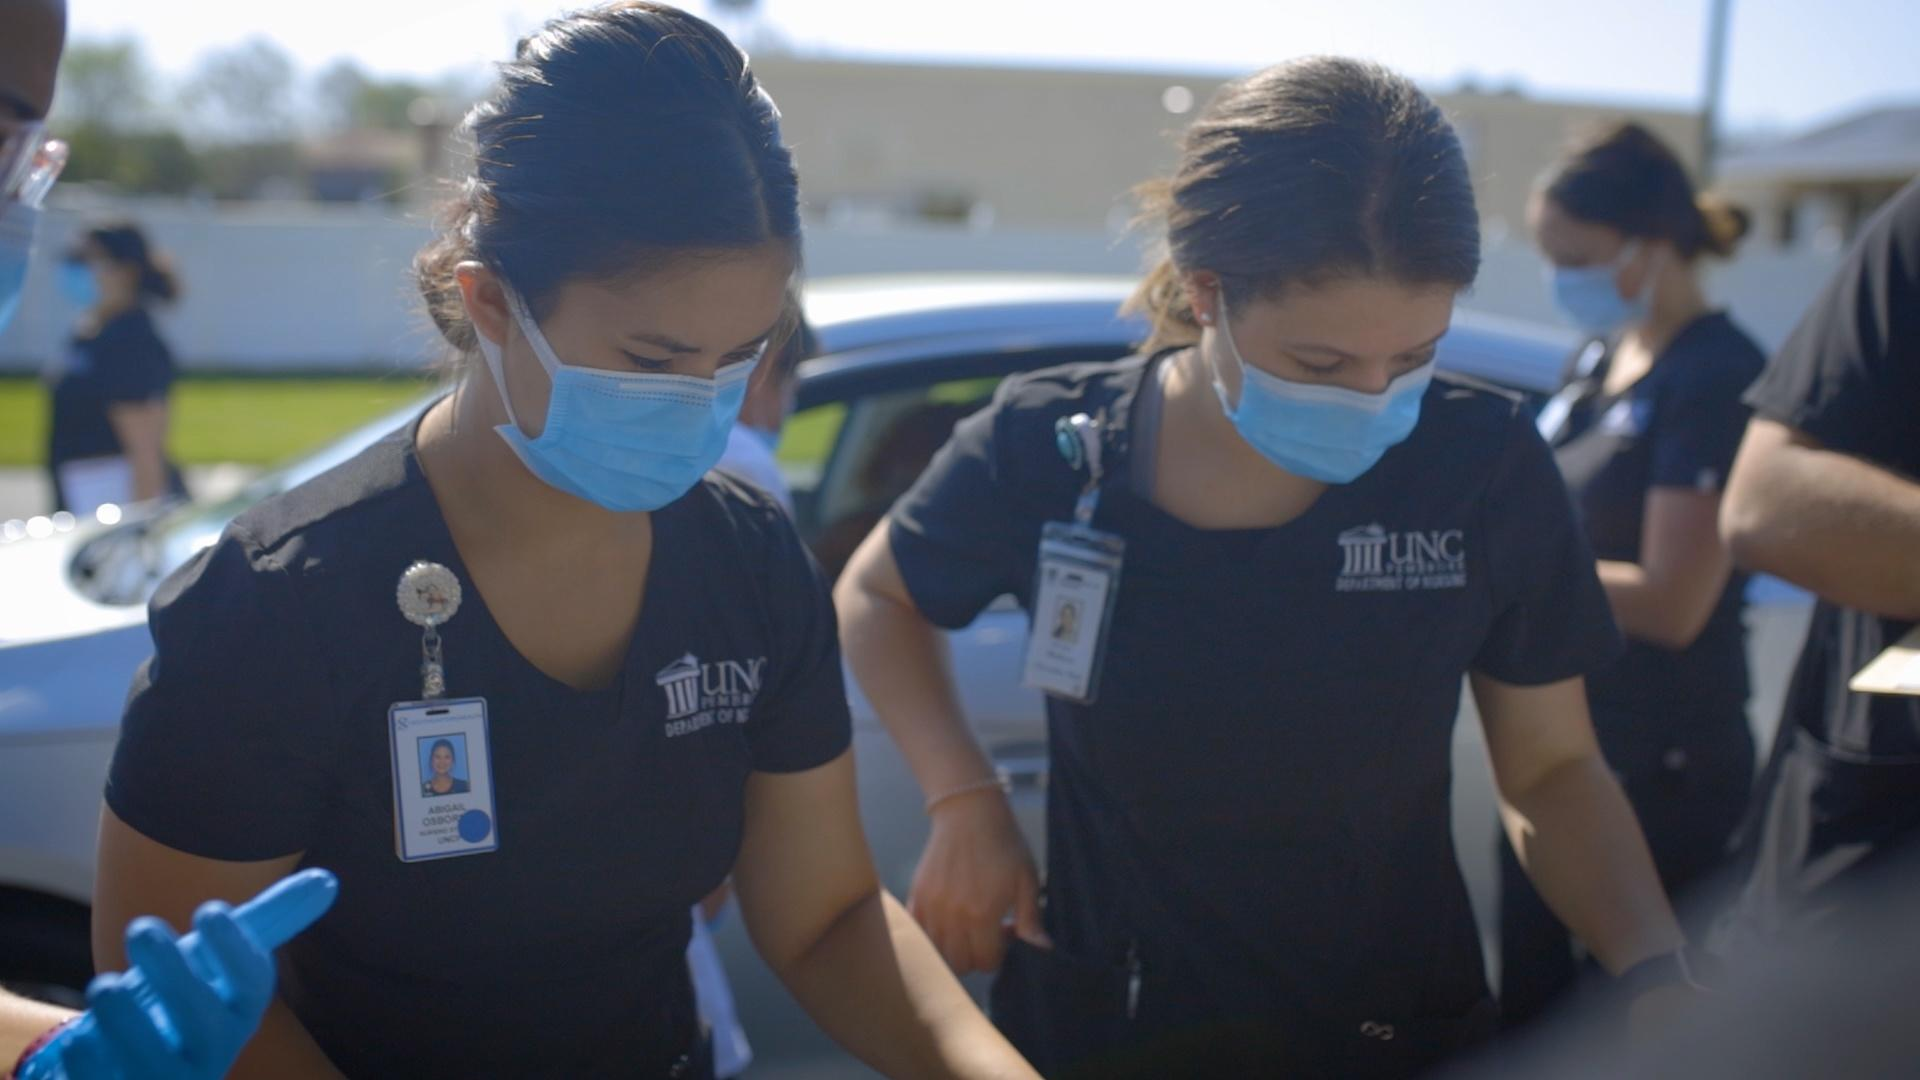 The Clinic on Wheels: Meeting Local Health Care Challenges